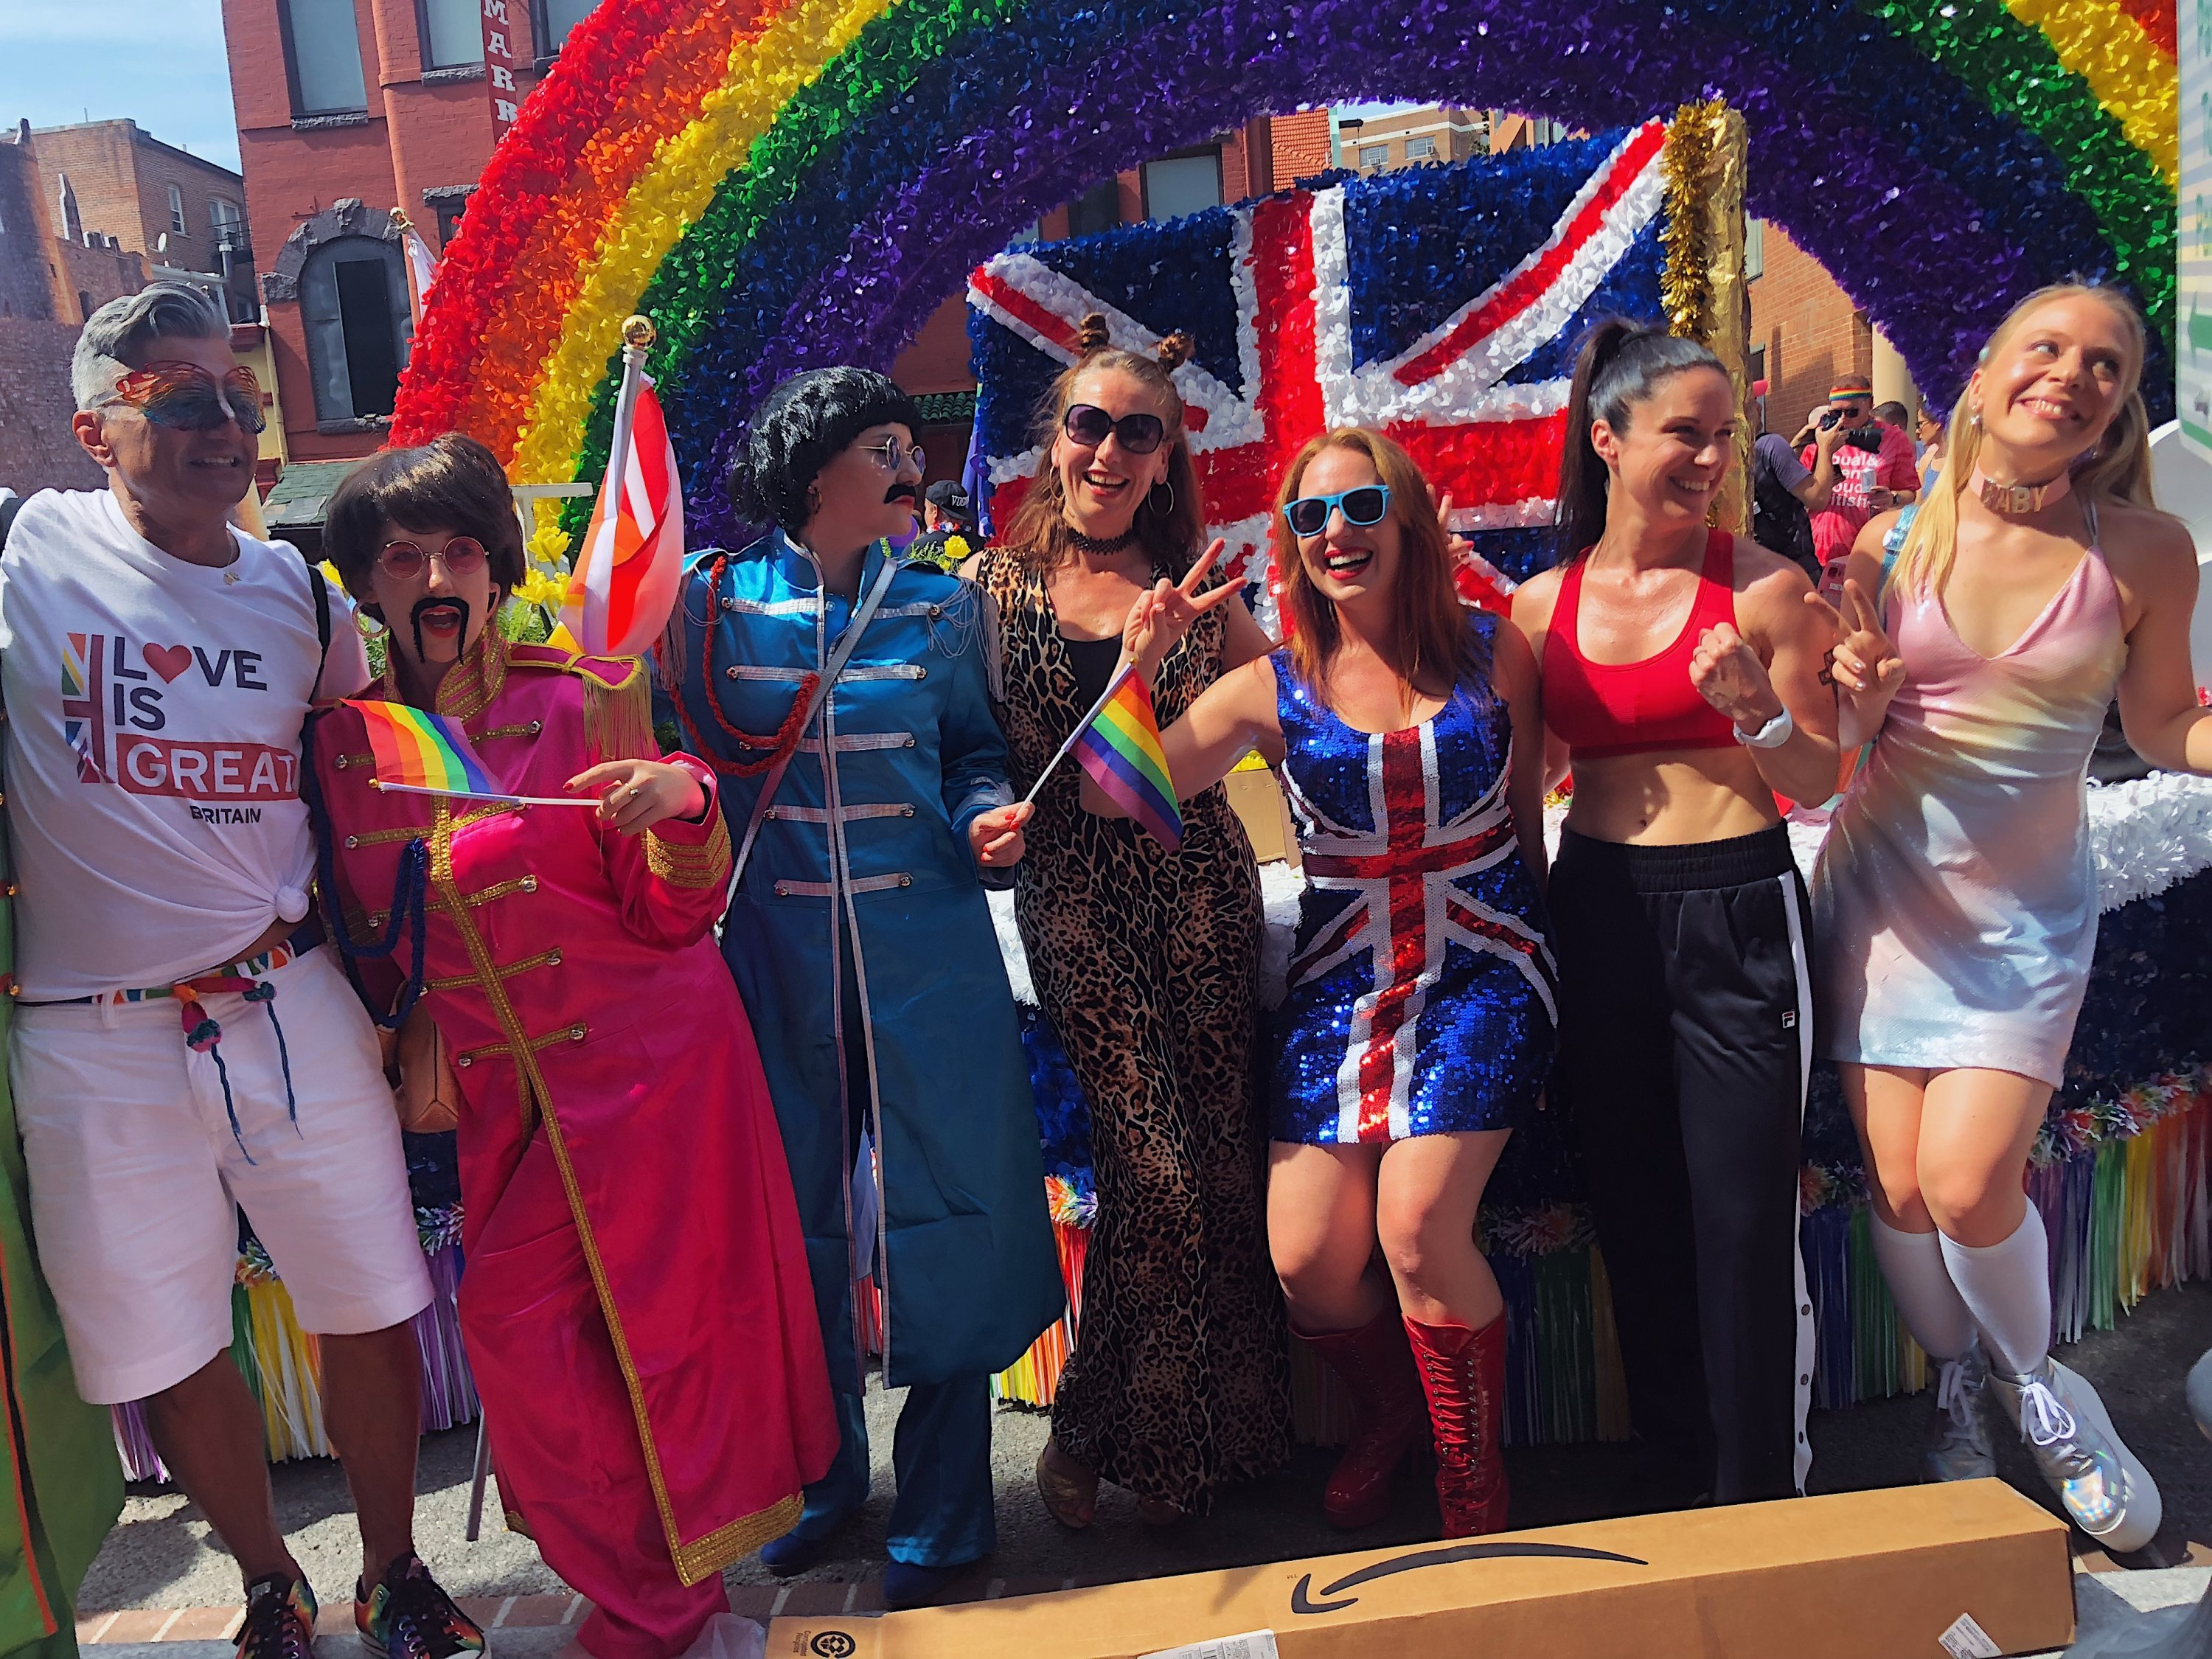 The Spice Girls and the Beatles pose in front of the float. Photograph by Daniella Byck.